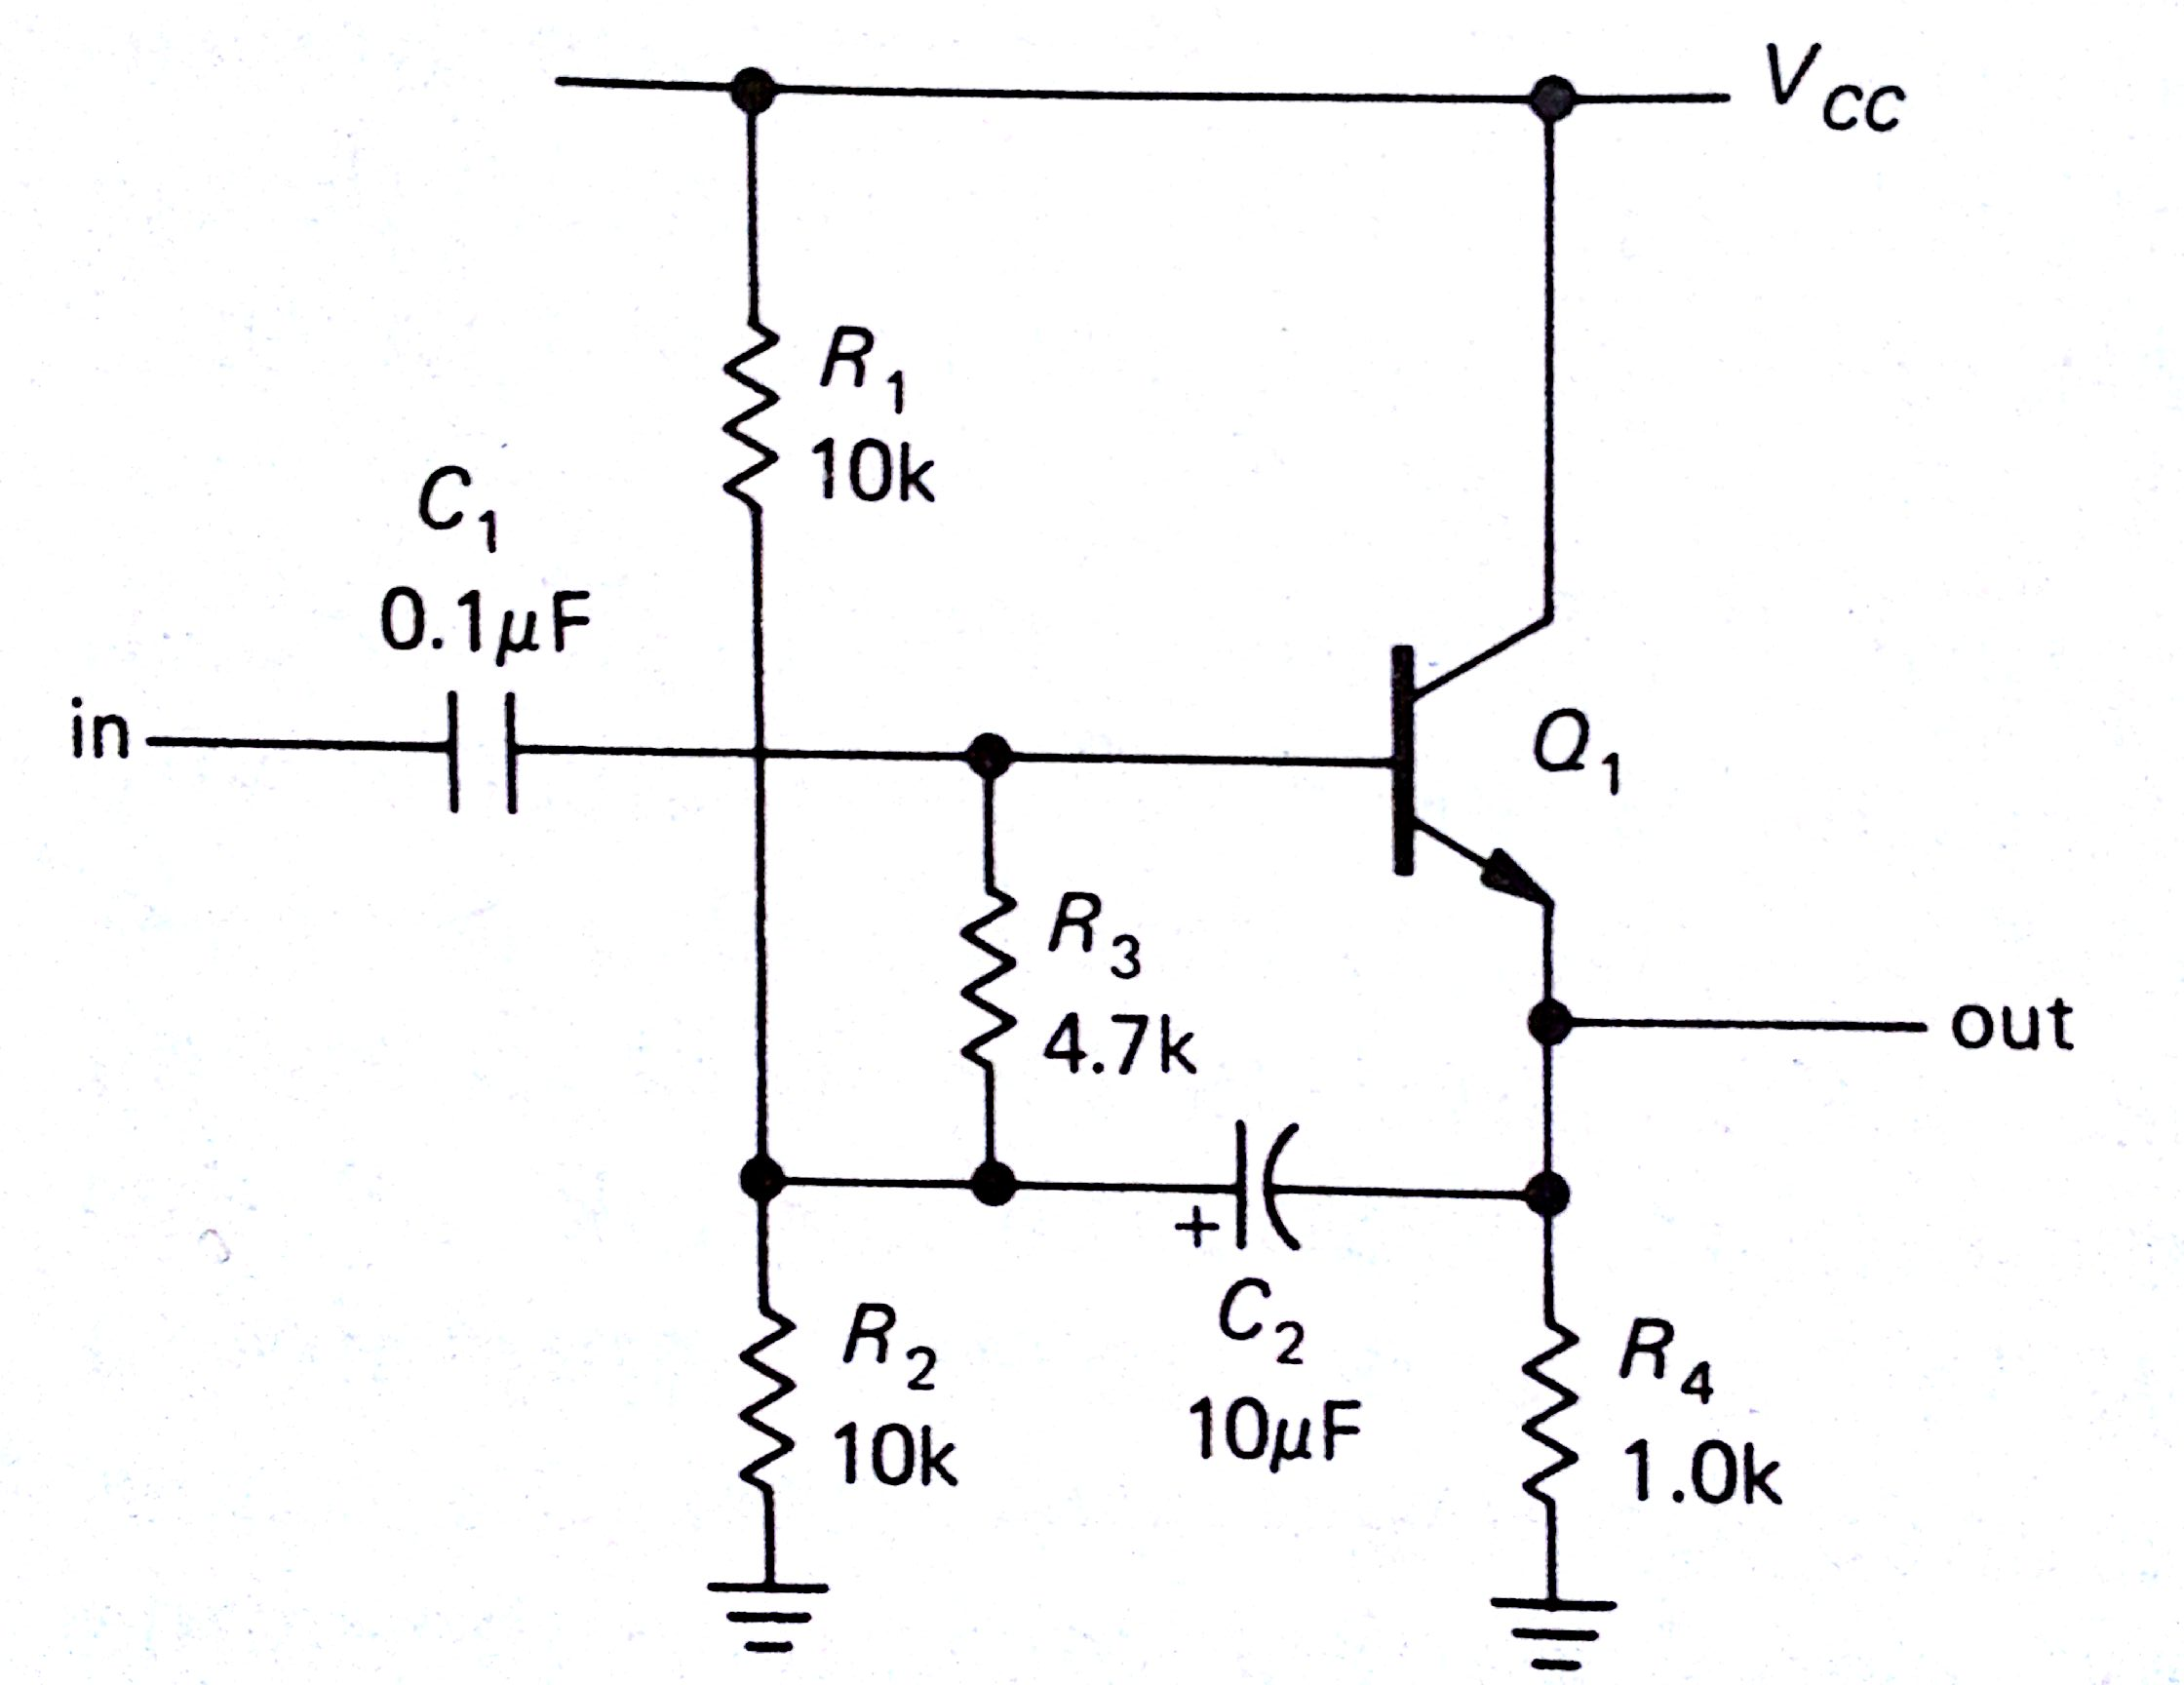 Why Are Inverting Op Amp Amplifiers Used In Most Cases